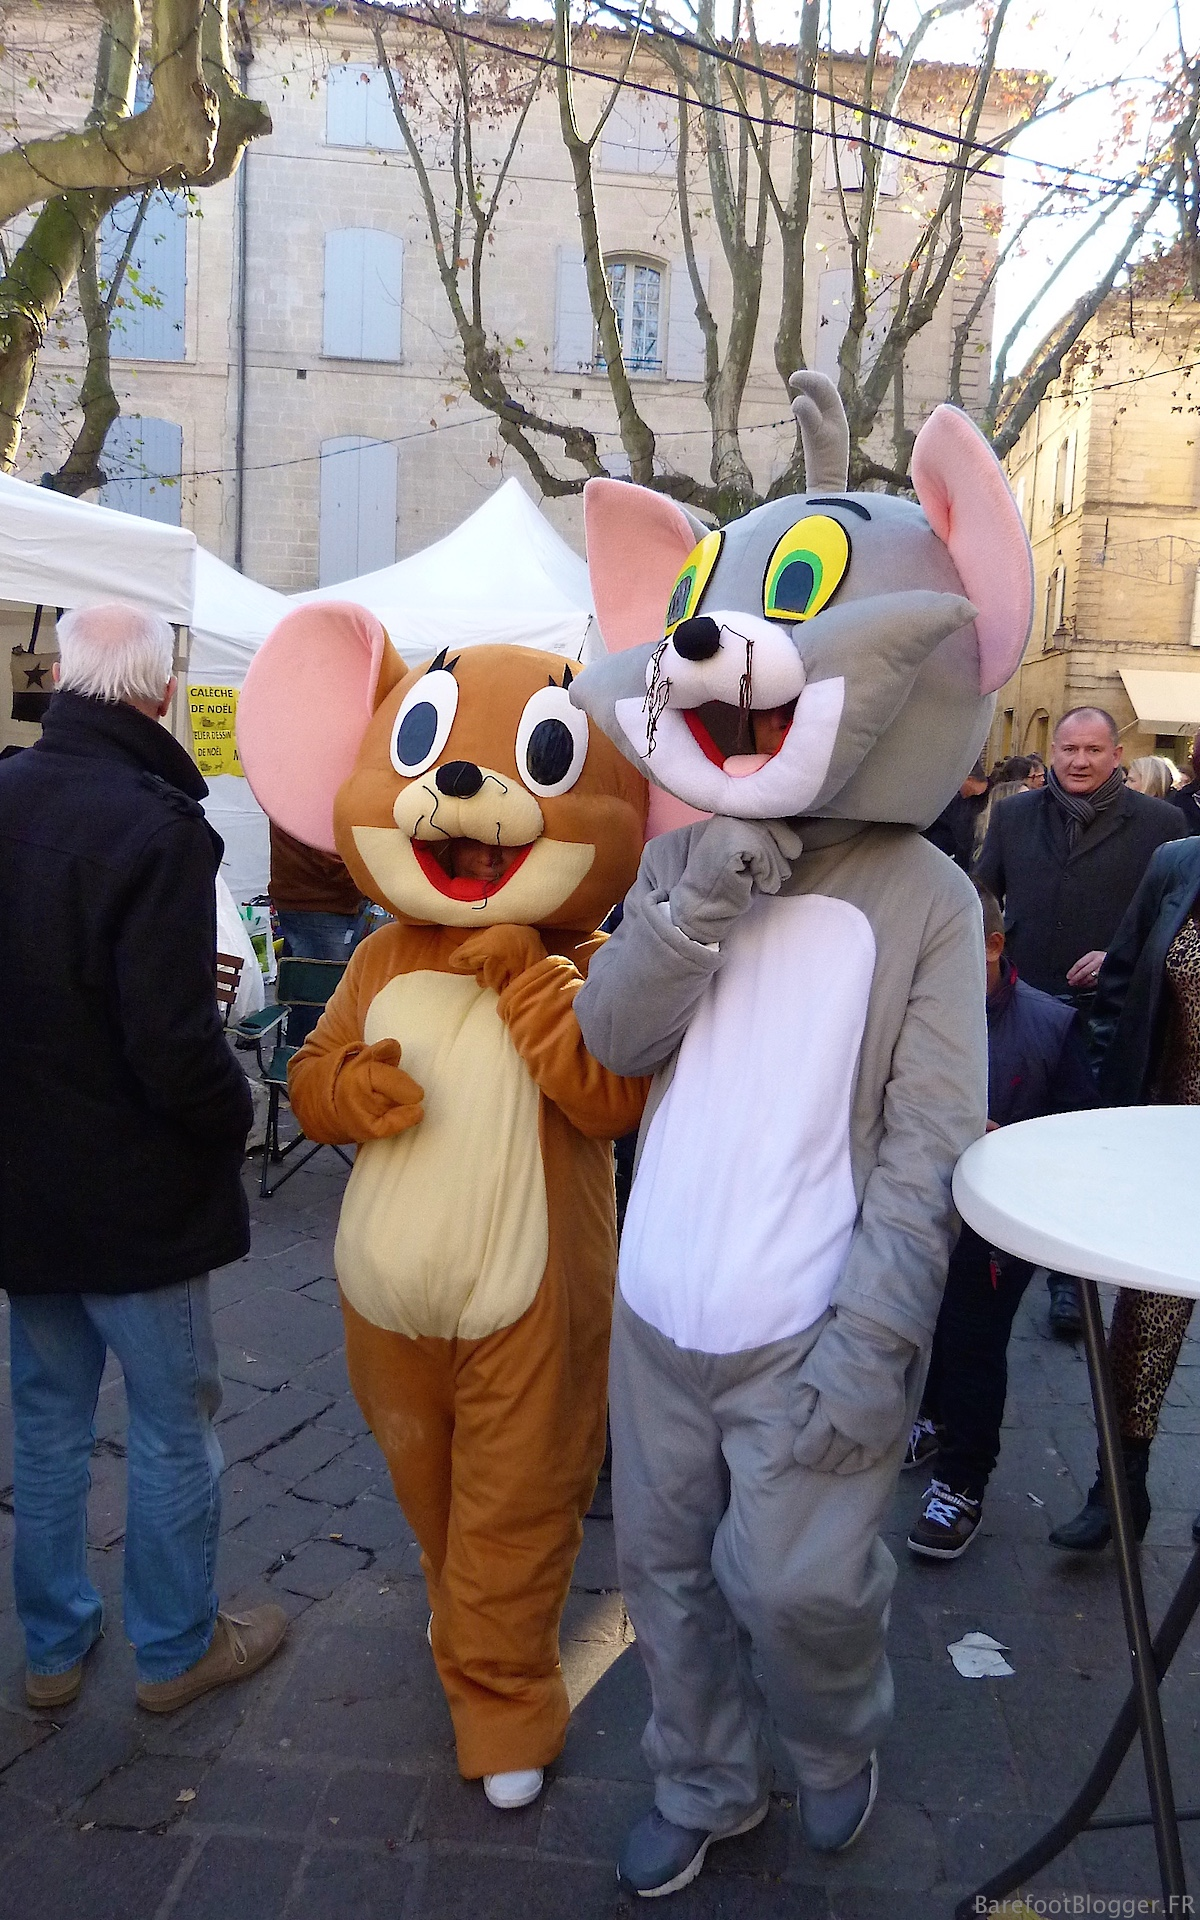 Silly mice in Uzes, France